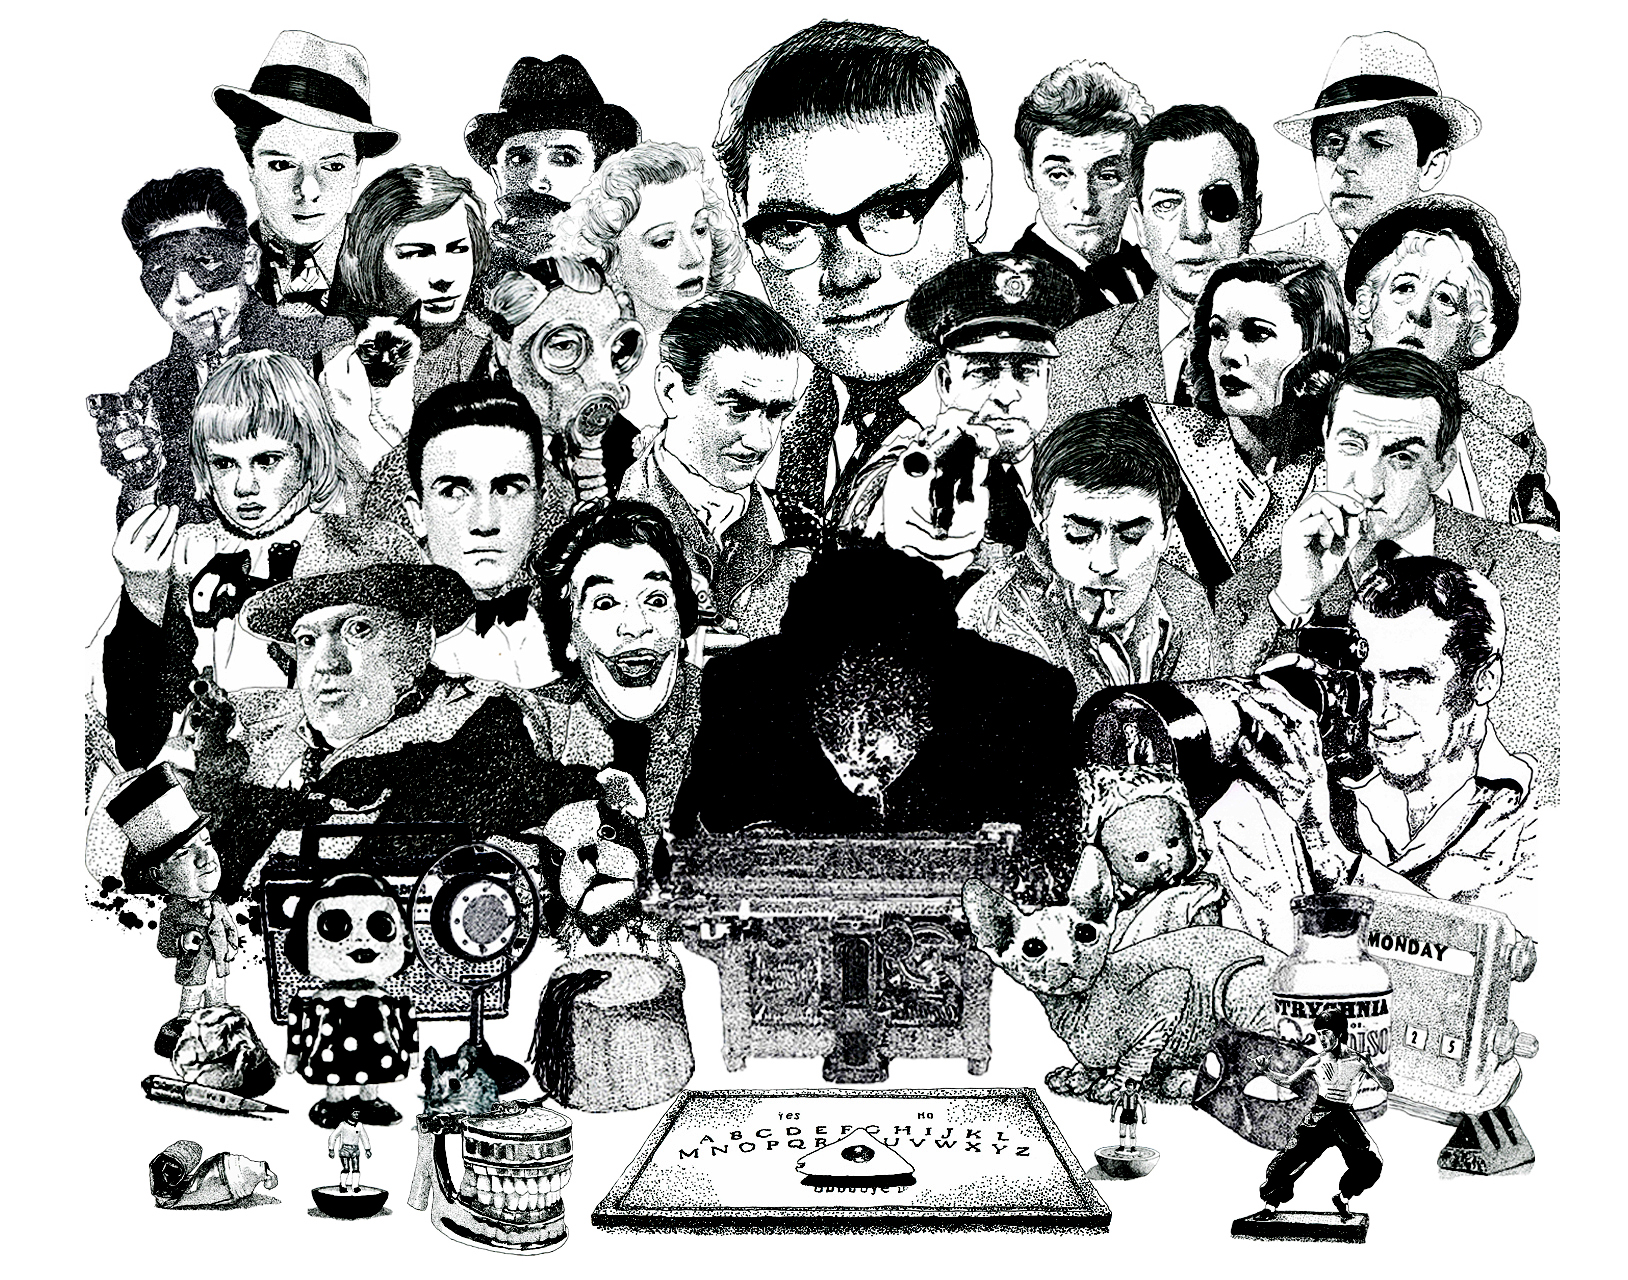 Psychic Investigator Hamilton Coe surrounded by characters associated with film noir and crime fiction. Featured characters include Orson Welles in Touch of Evil, James Stewart in Rear Window, Hayley Mills in Tiger bay, Richard Attenborough in brighton Rock, Clifton Webb in Laura, Robert Mitchum in Night of the Hunter, roman Polanski in Chinatow, Margaret Rutherford as Miss Marple, Ivor Novello as The Lodger, Patricia Highsmith, Lino Ventura, Alain Delon Gene Tierney